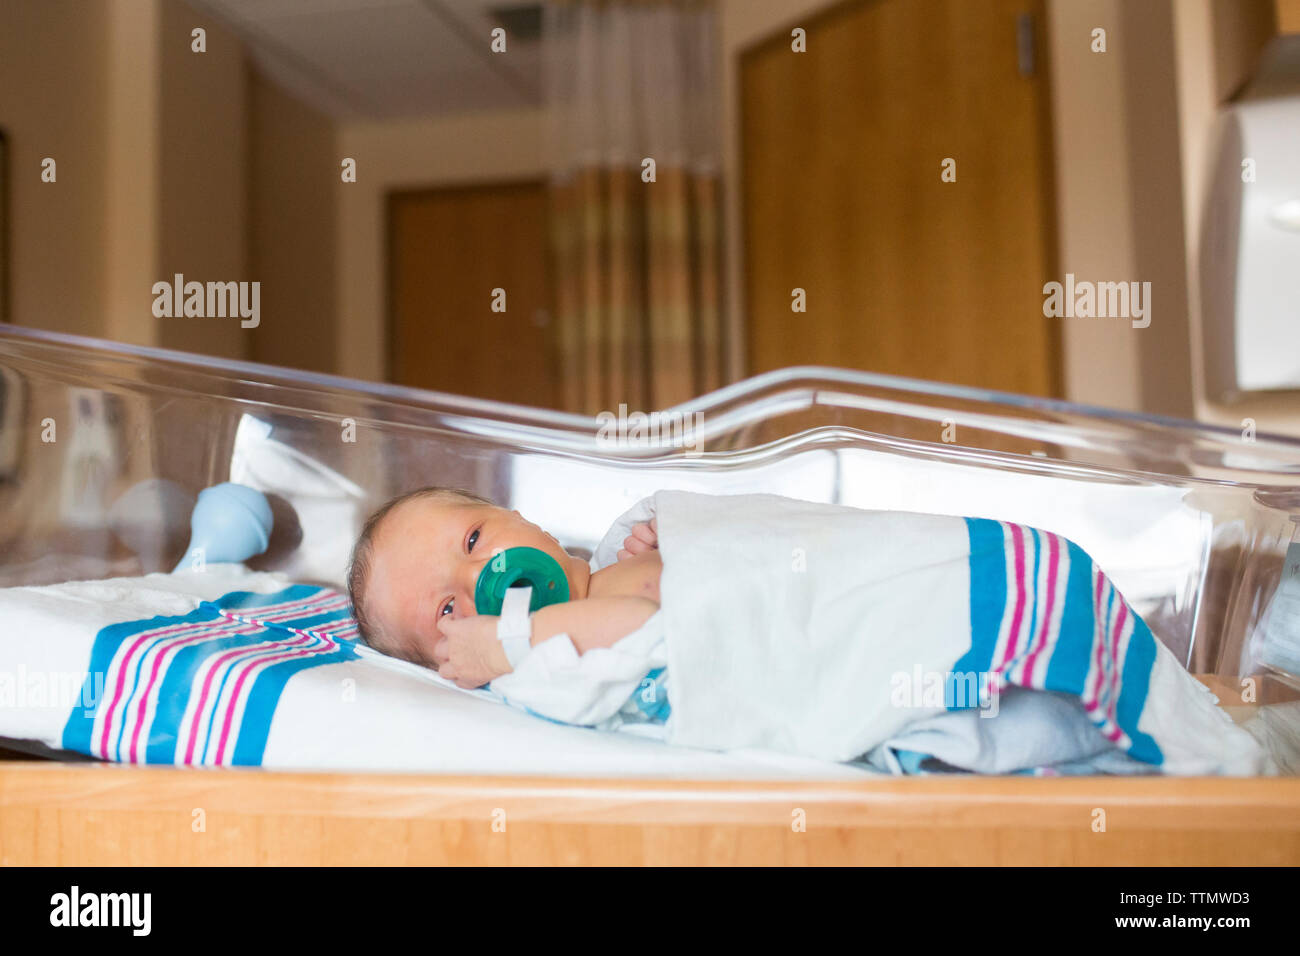 Portrait of baby boy with pacifier in mouth lying in crib at hospital Stock Photo